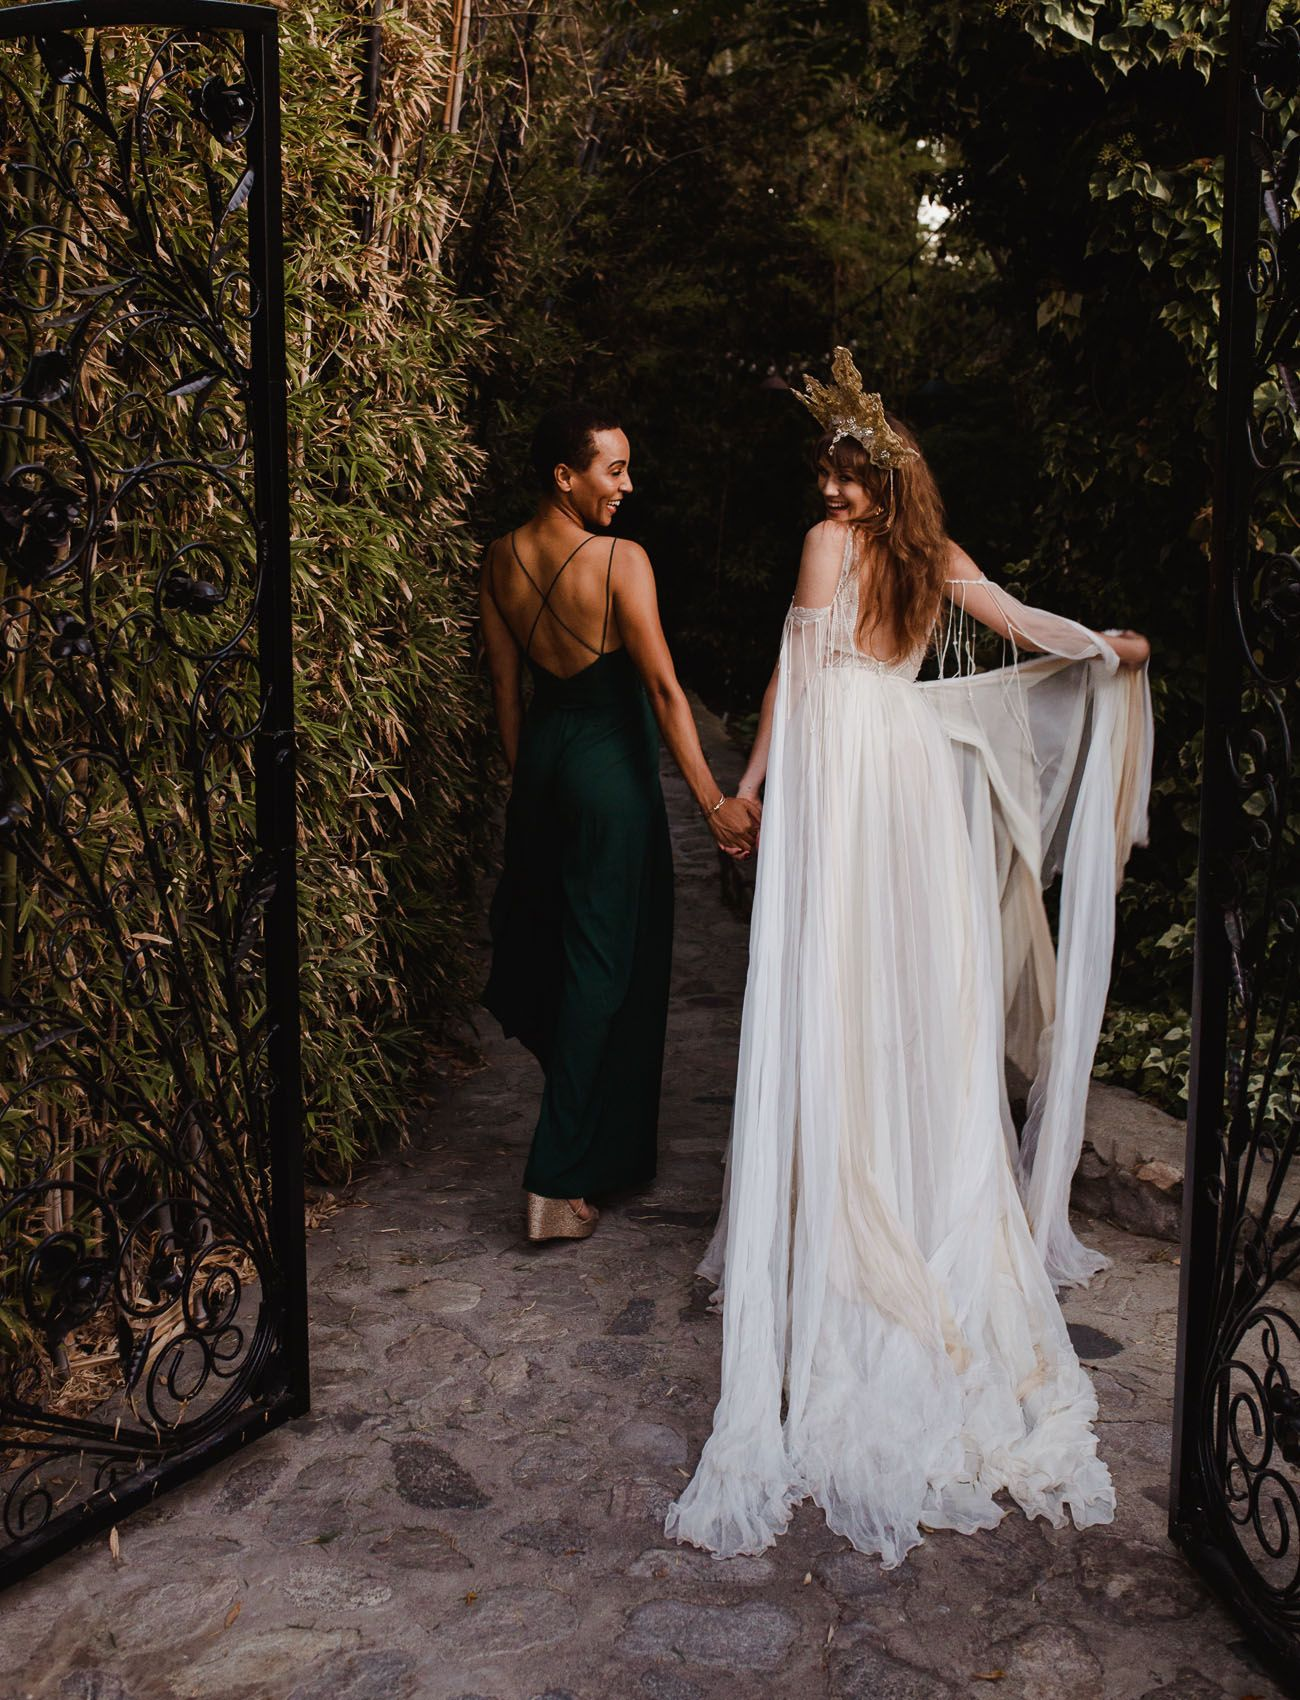 Gold Dust Women: Witchy Stevie Nicks Inspired Wedding in the